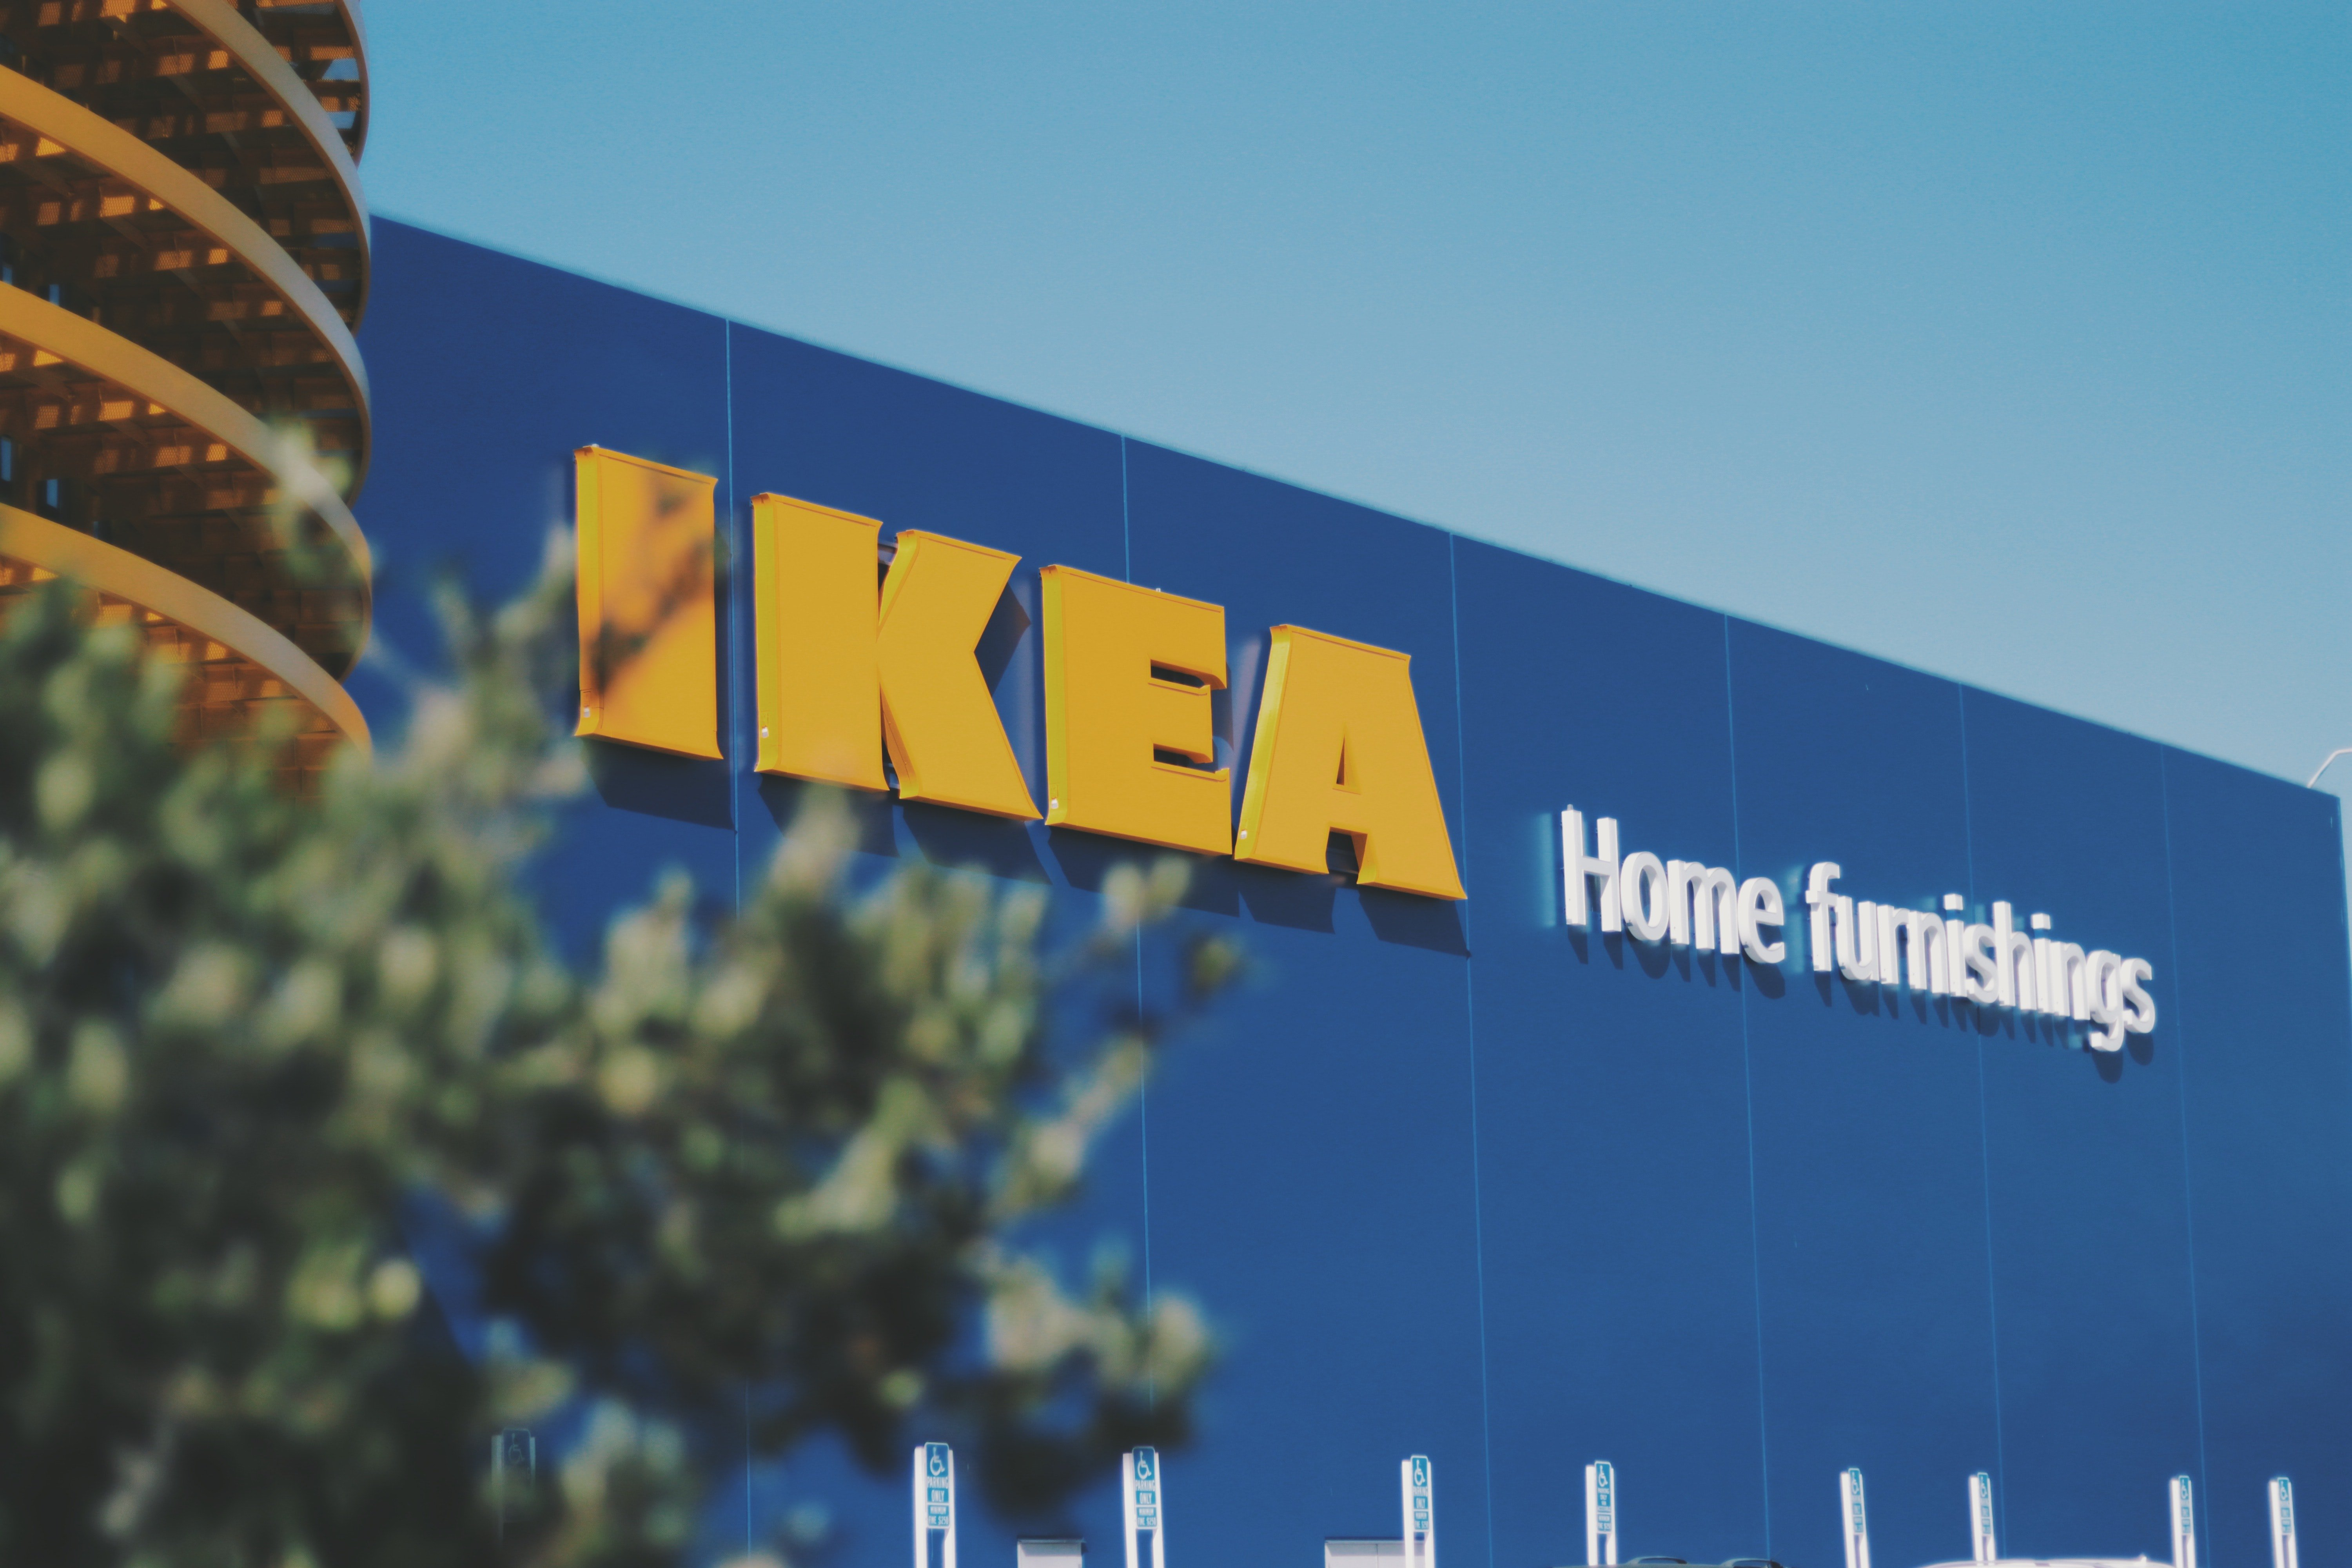 Pictured - IKEA home furnishings building   Source: Pexels